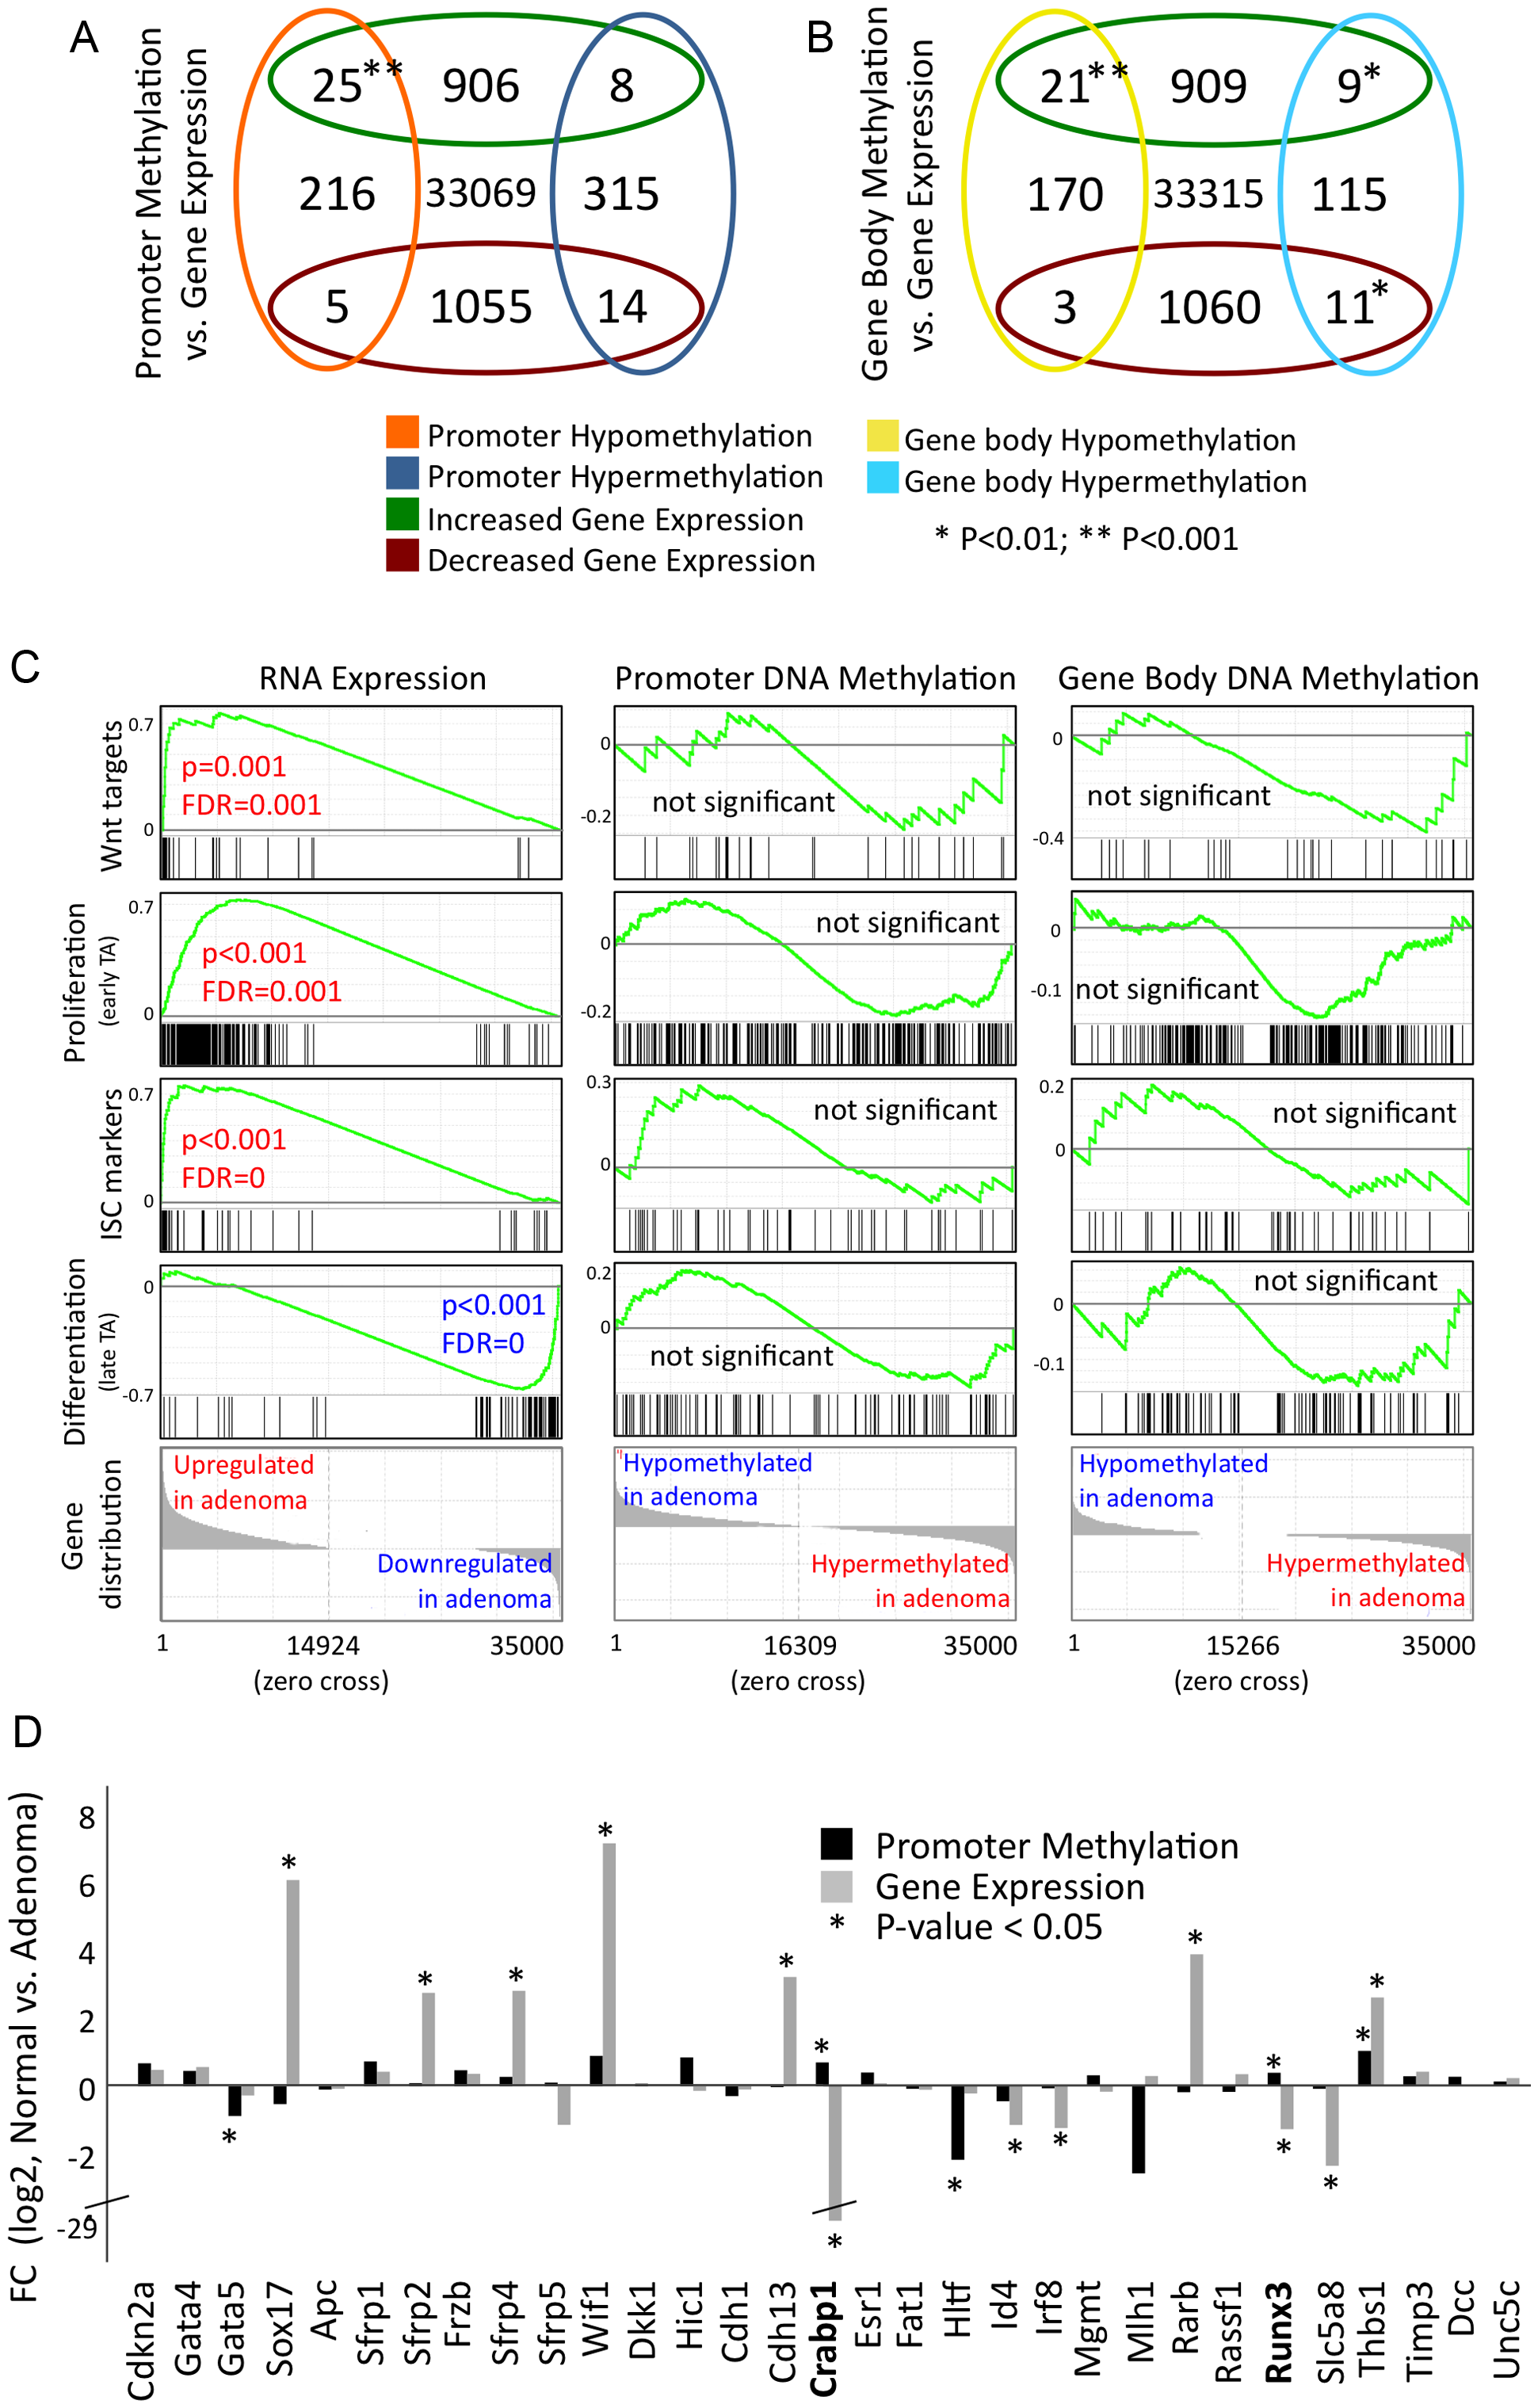 Differential gene methylation and differential gene transcription in adenoma do not correlate extensively.